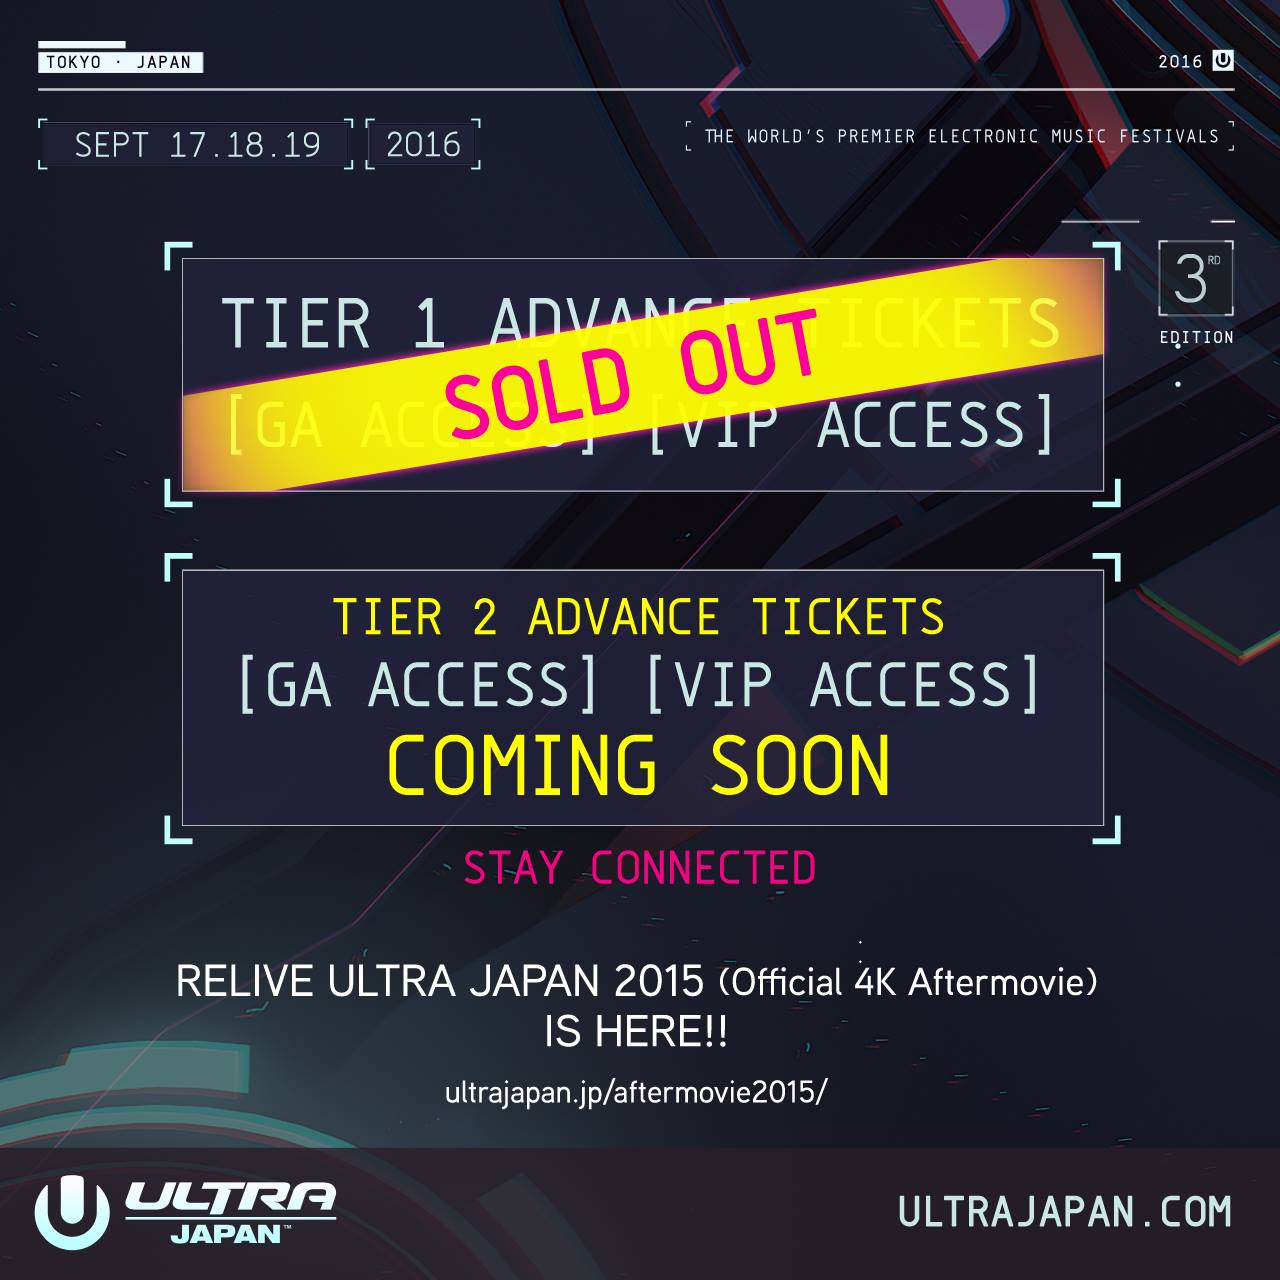 TIER1 ADVANCE TICKETS ALL SOLD OUT